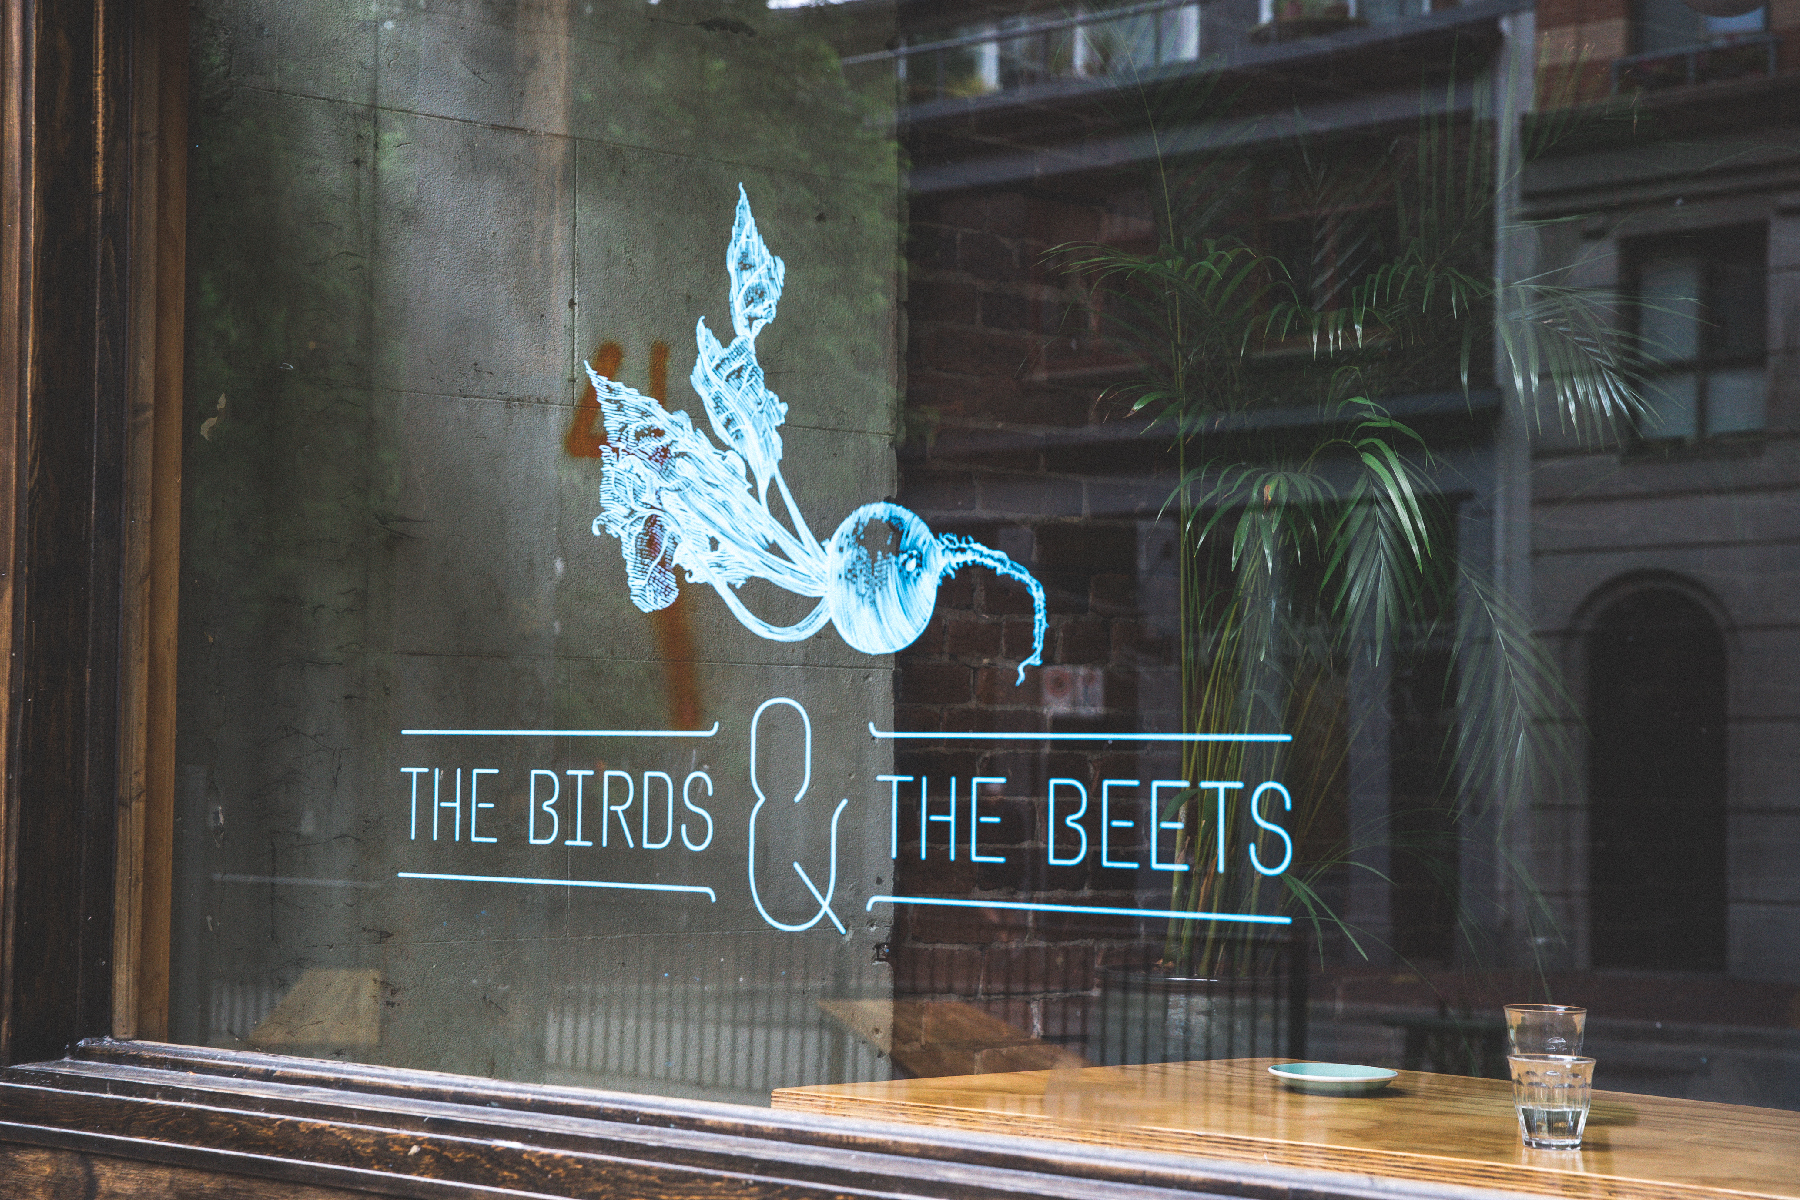 33 Eats: The Birds & The Beets